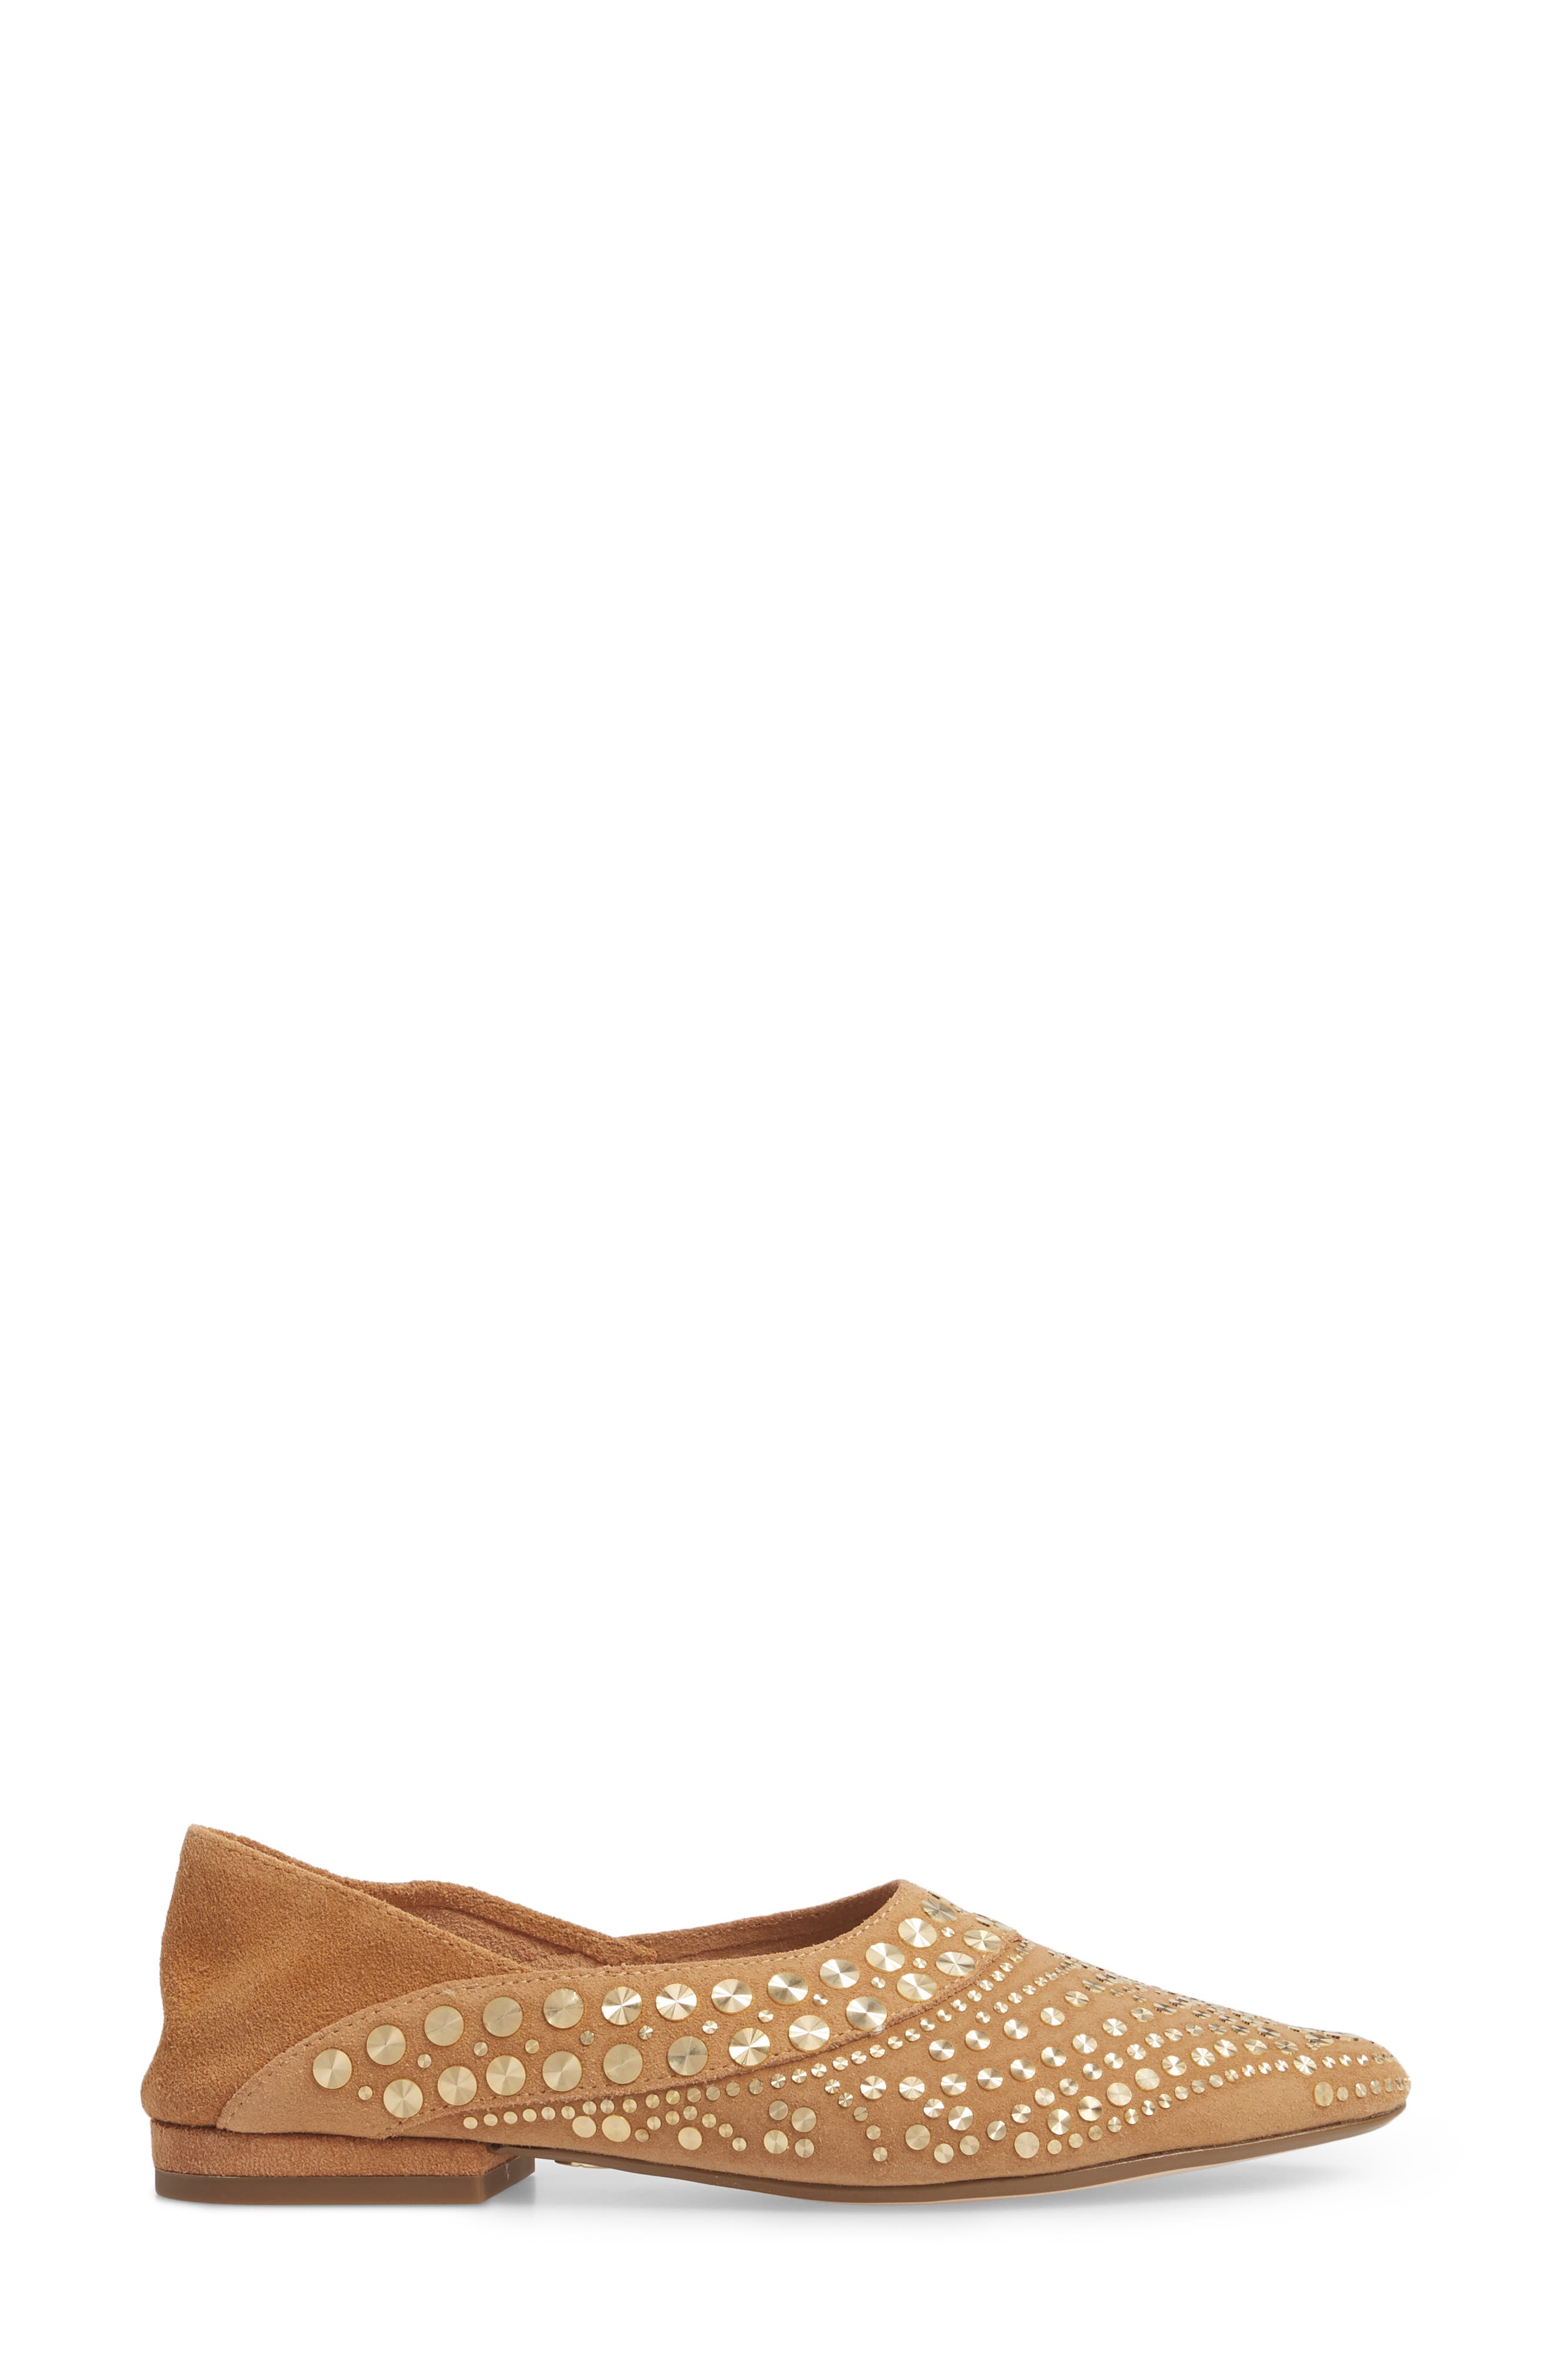 Mojito Convertible Flat,                             Alternate thumbnail 2, color,                             SAND SUEDE